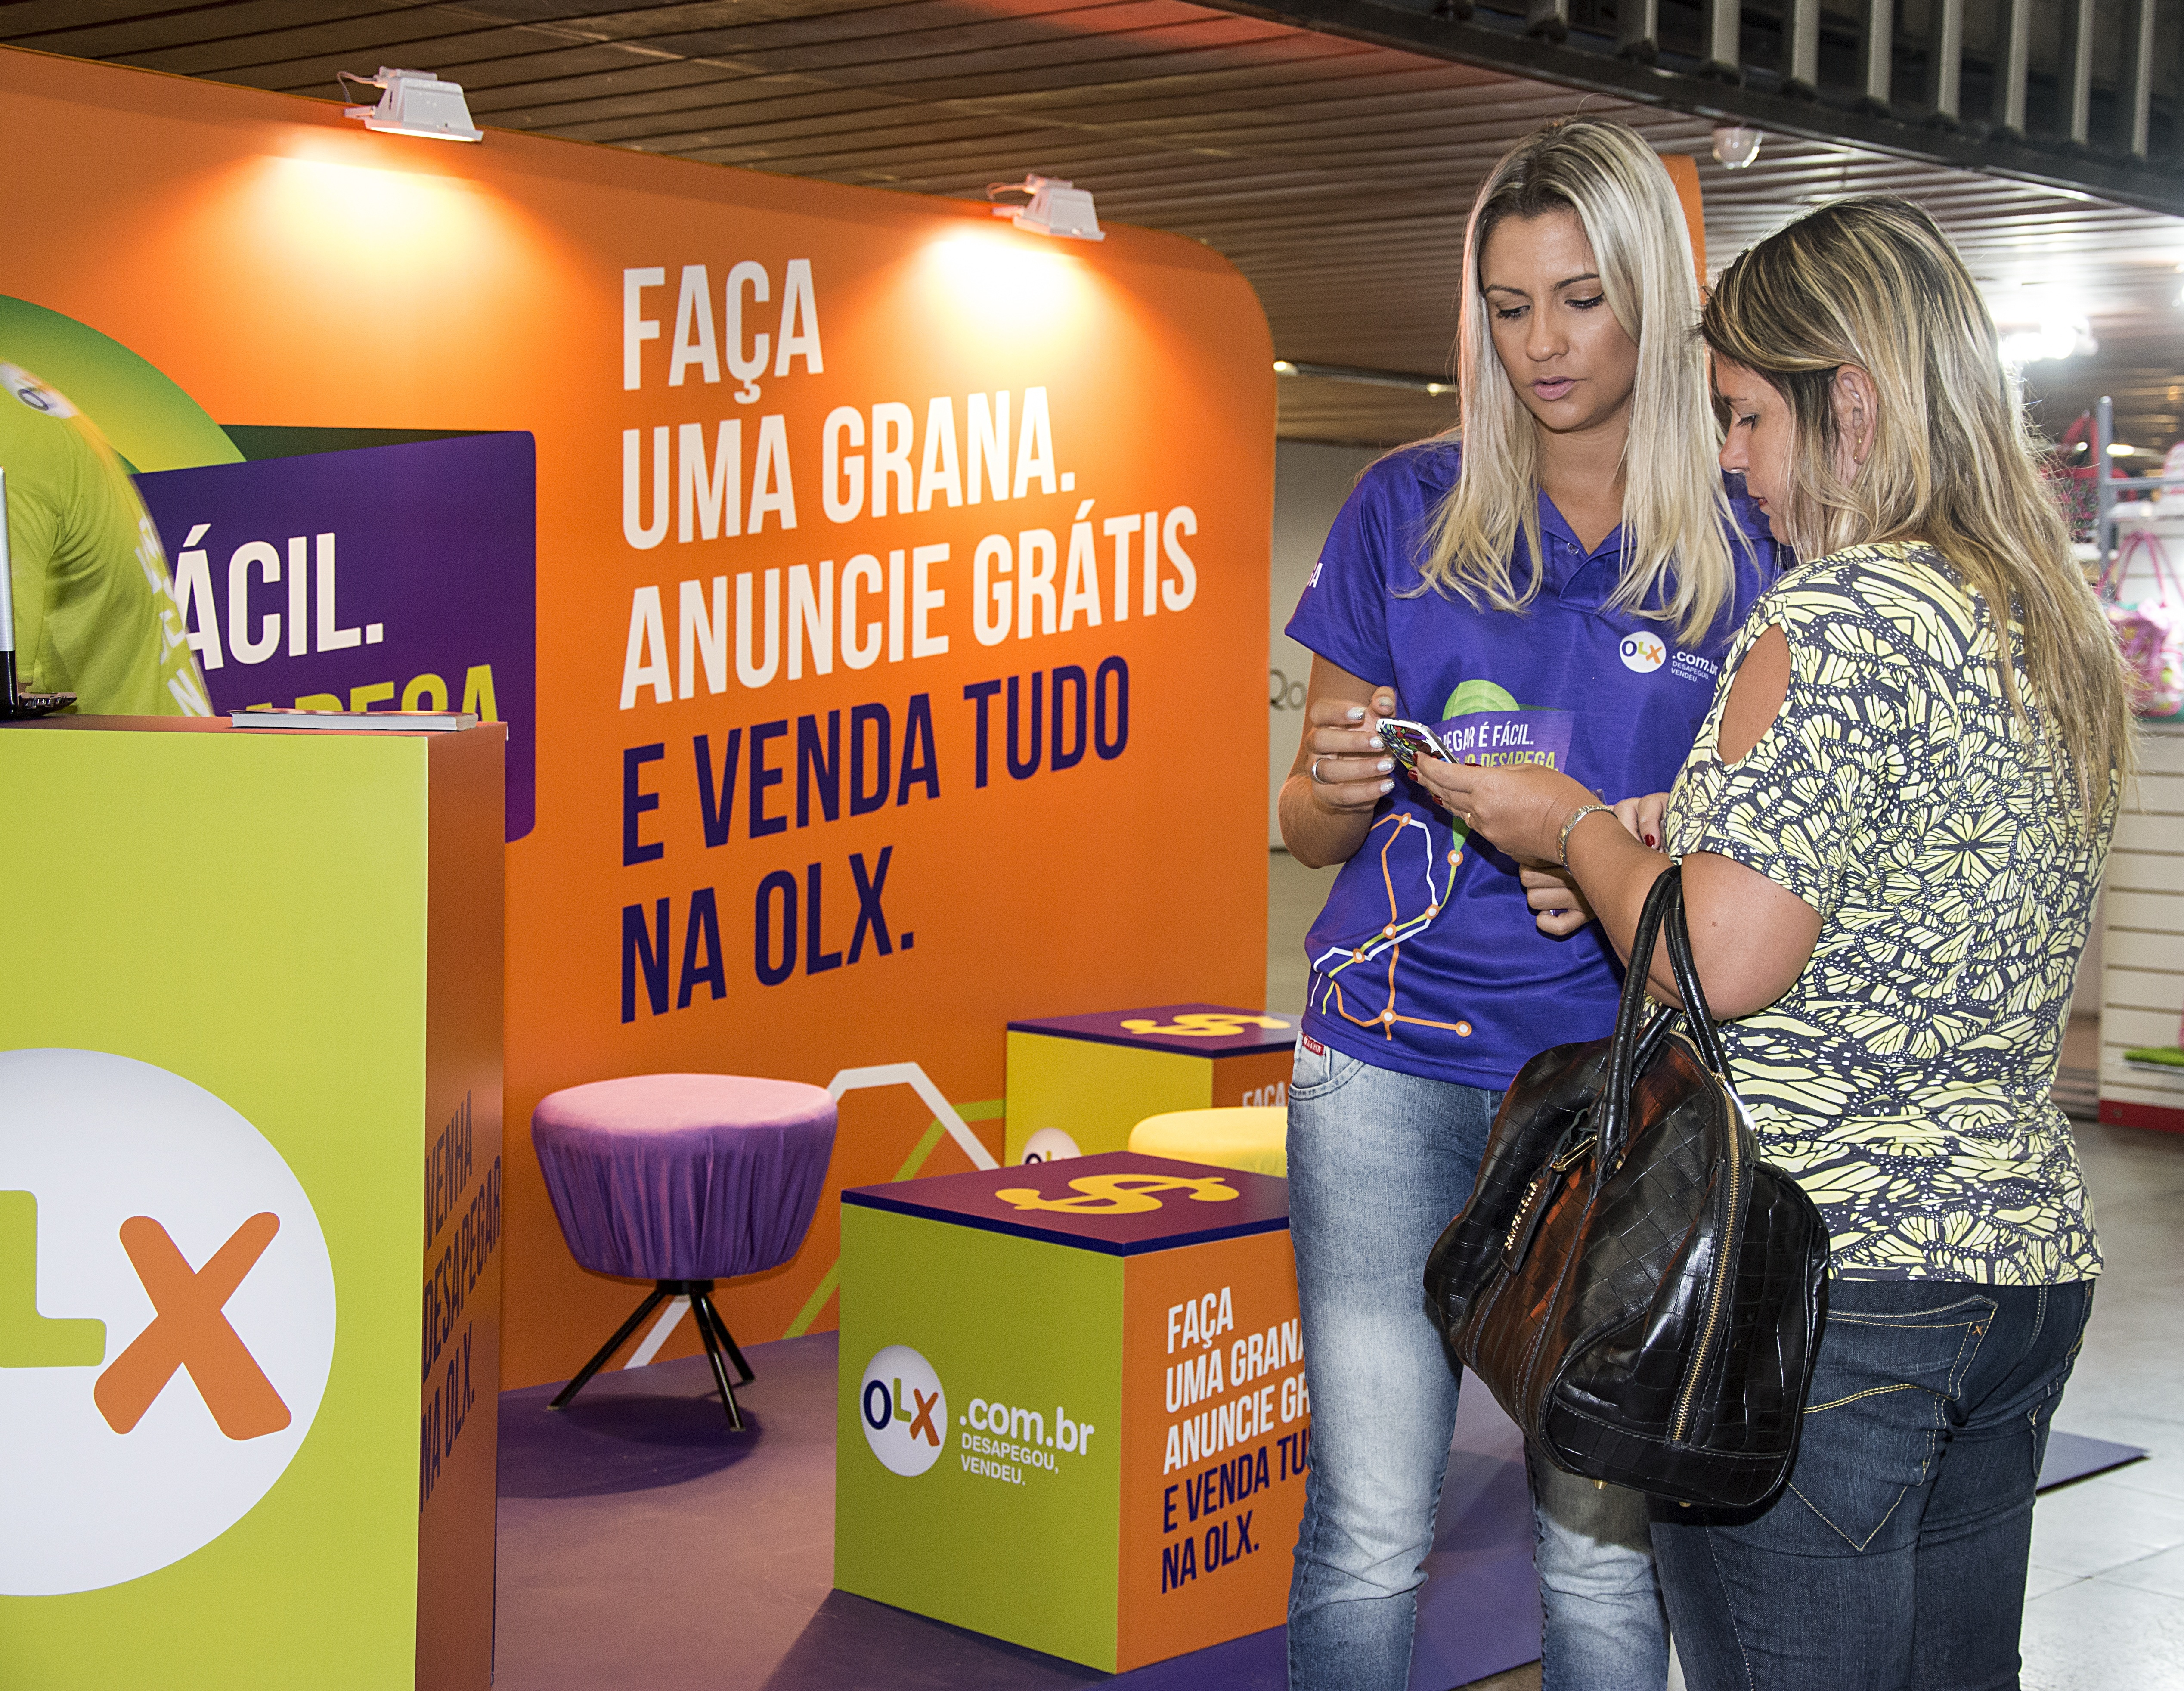 An OLX kiosk in use. (Photo: Business Wire)